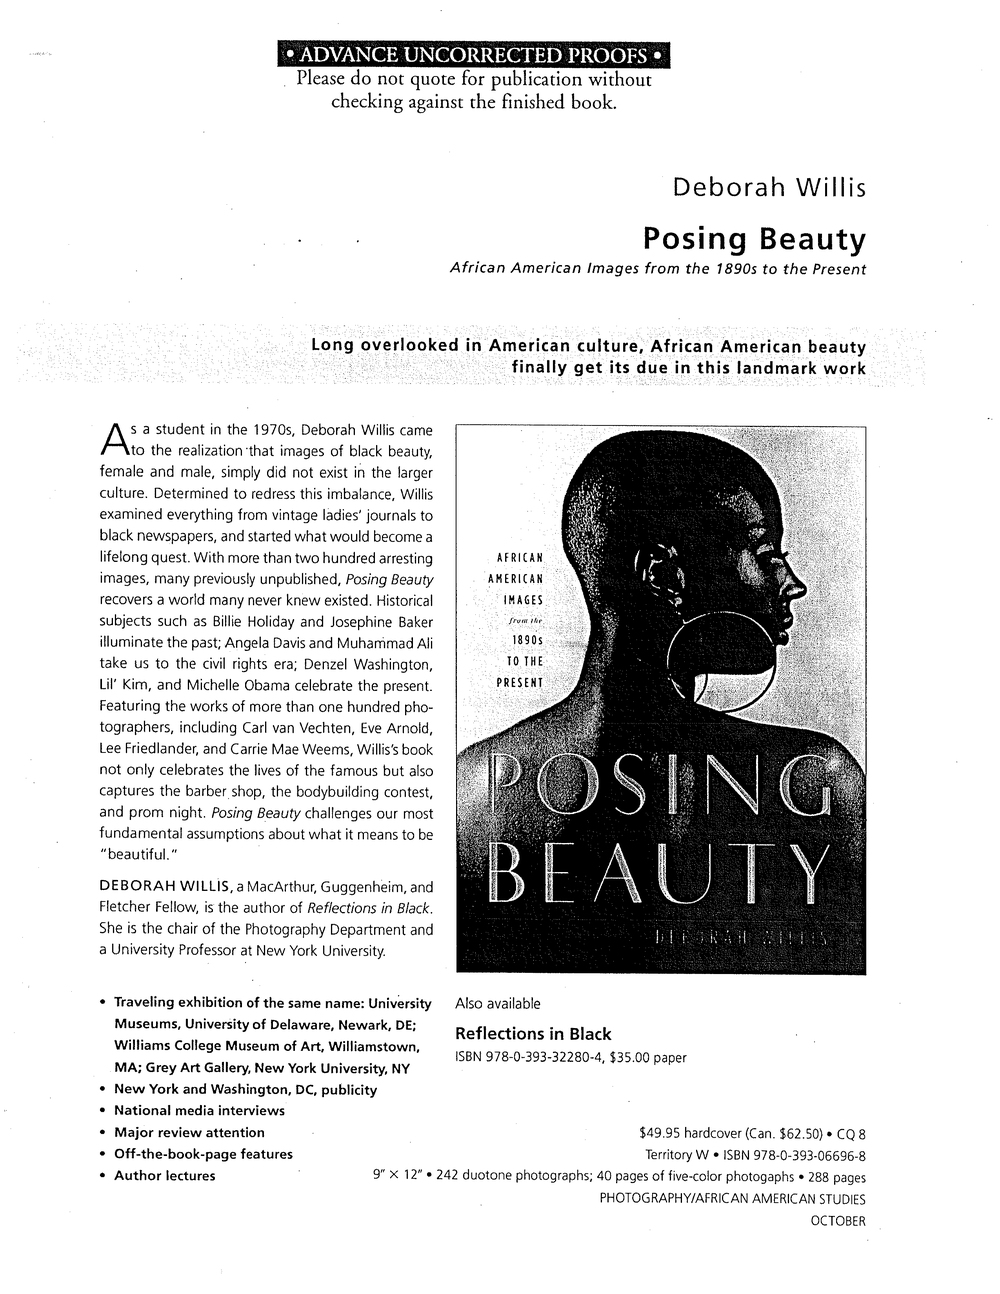 deb willis scans 5-1_posingproofs.jpg